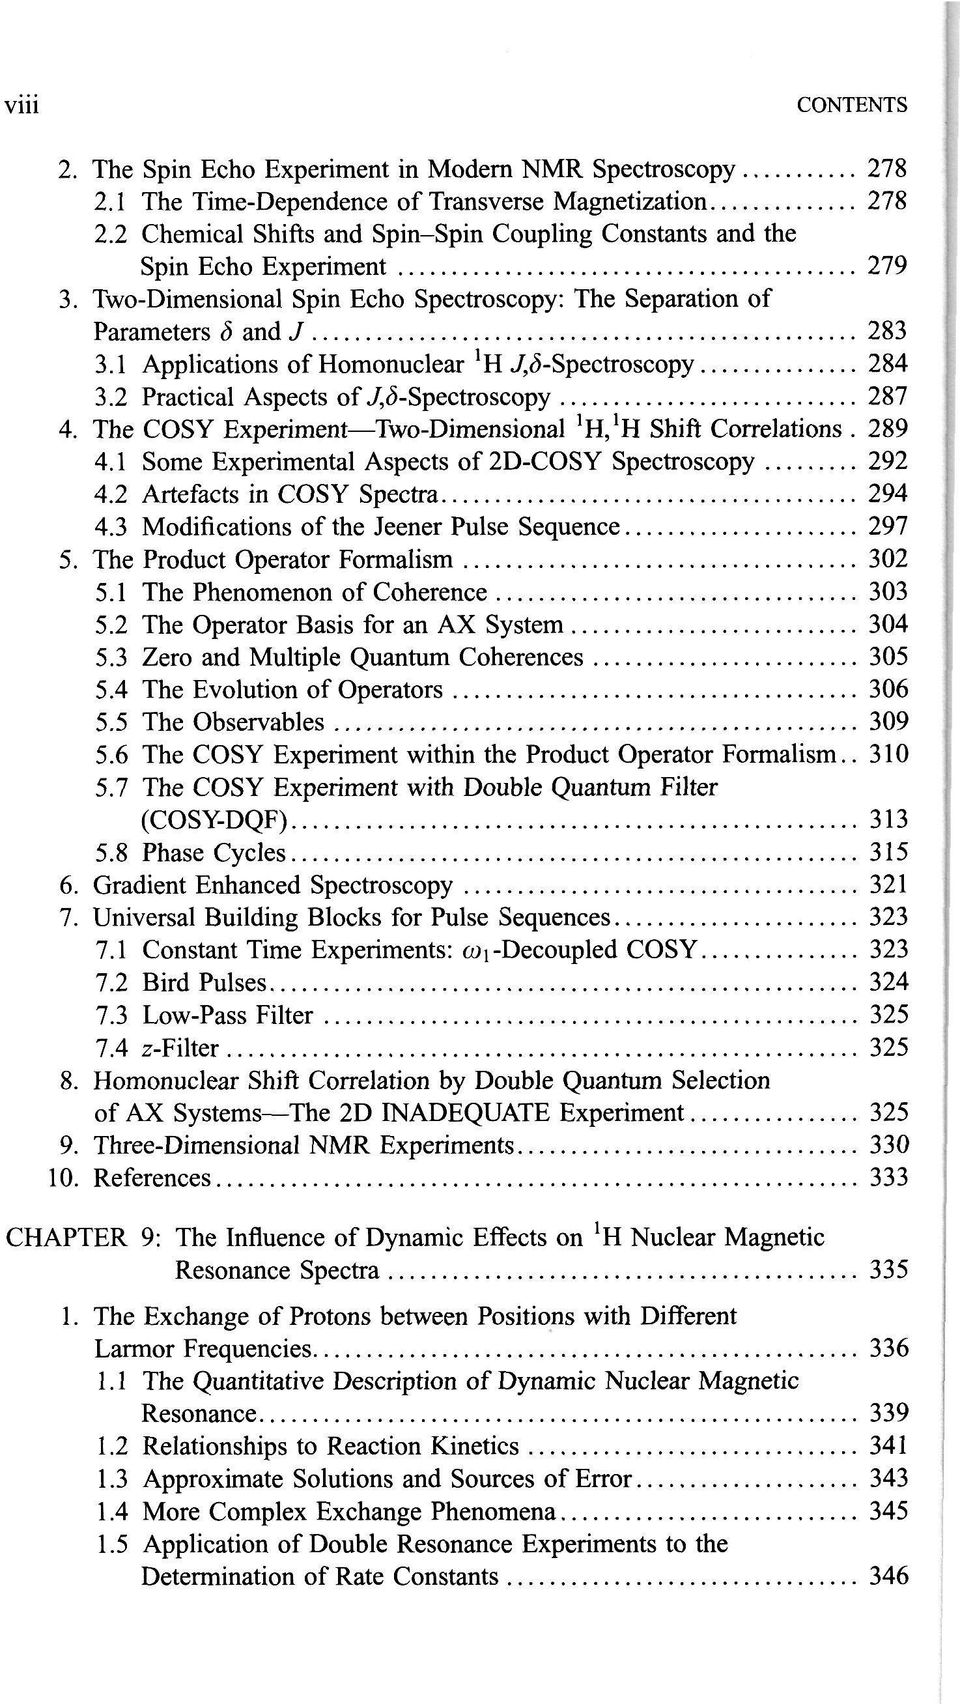 1 Applications of Homonuclear *H,/,<5-Spectroscopy 284 3.2 Practical Aspects of./,<5-spectroscopy 287 4. The COSY Experiment Two-Dimensional 'H/H Shift Correlations. 289 4.